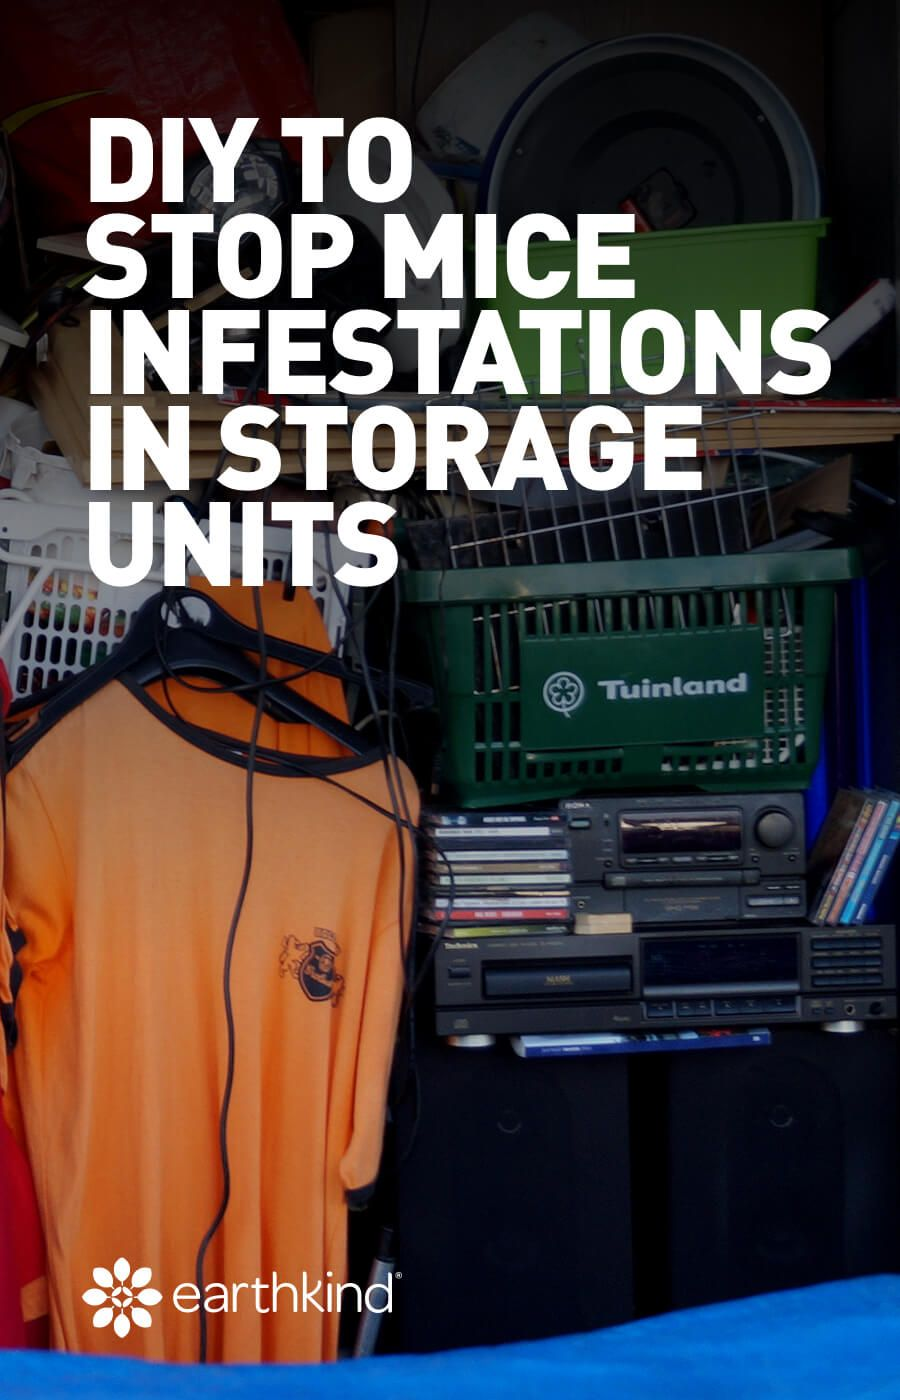 Diy to stop mice infestations in storage units earthkind